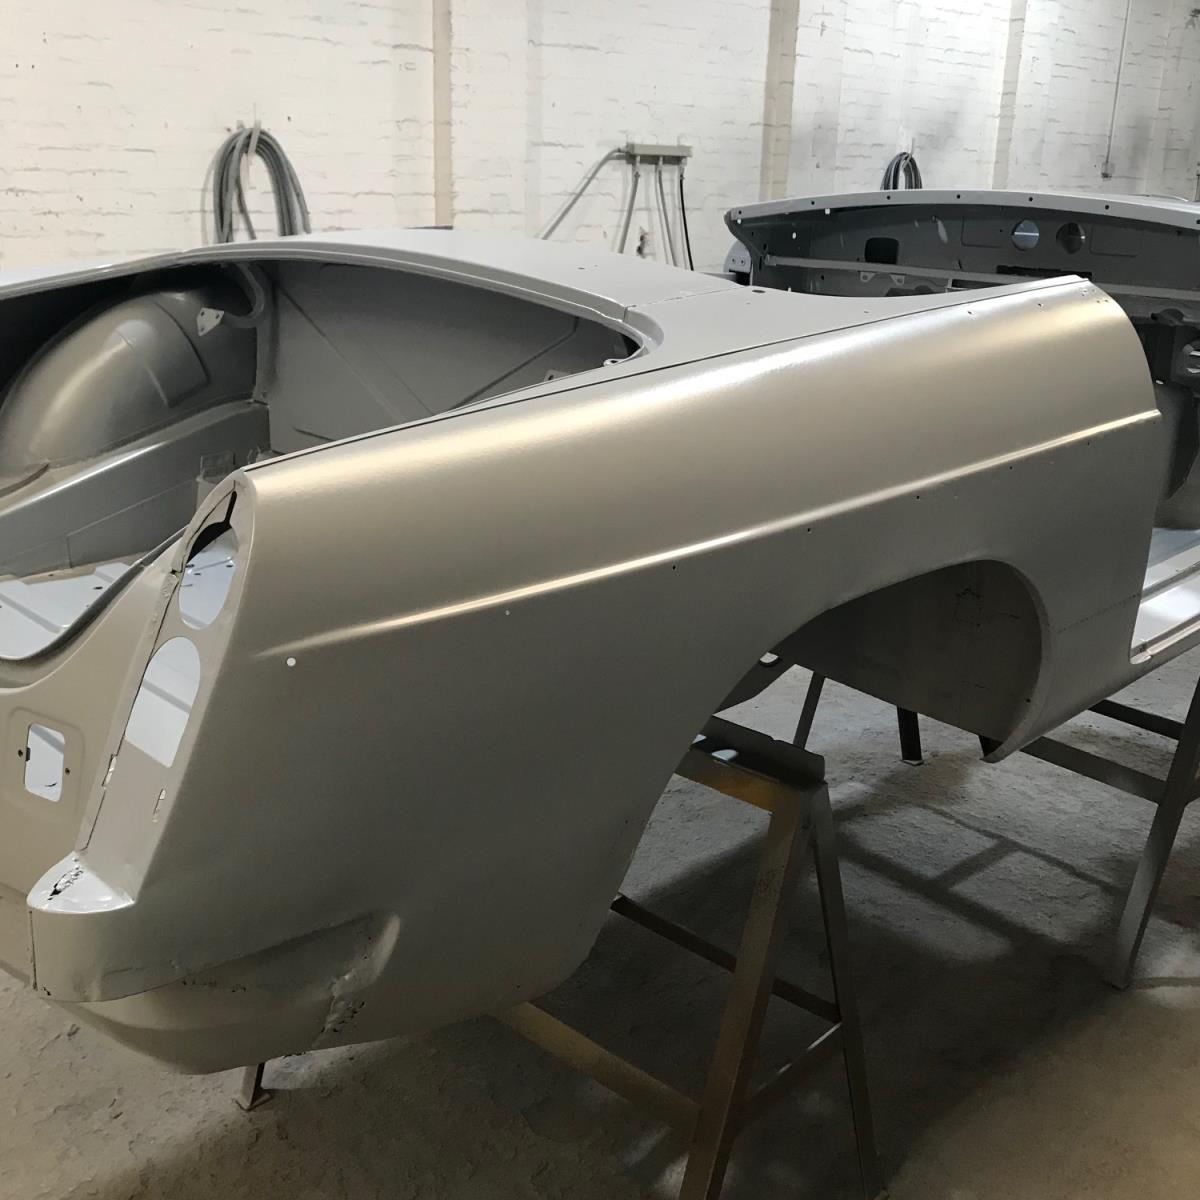 Zinc phosphate primed restored MGB shell drying before collection